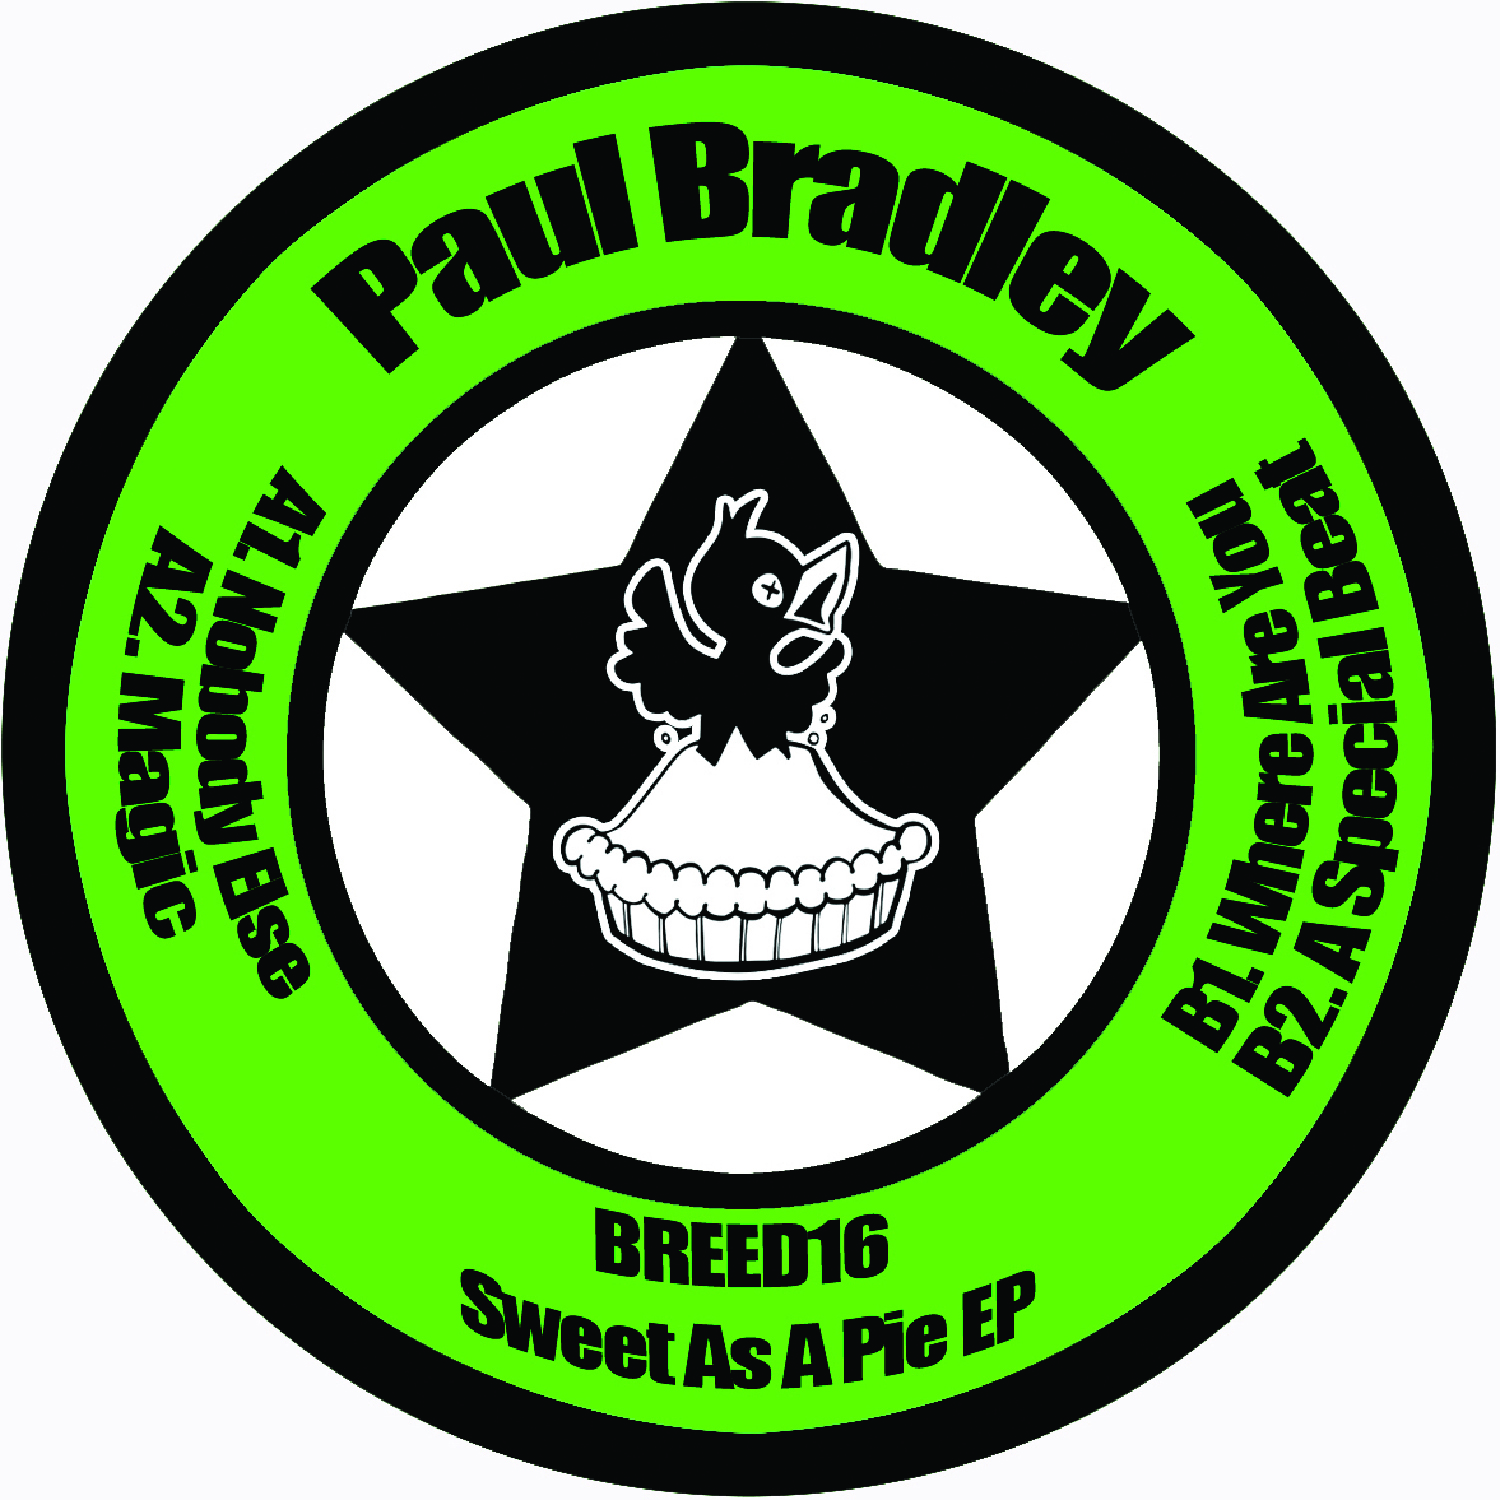 "[BREED016] Paul Bradley - Sweet As A Pie EP (12"" Vinyl + Digital)"